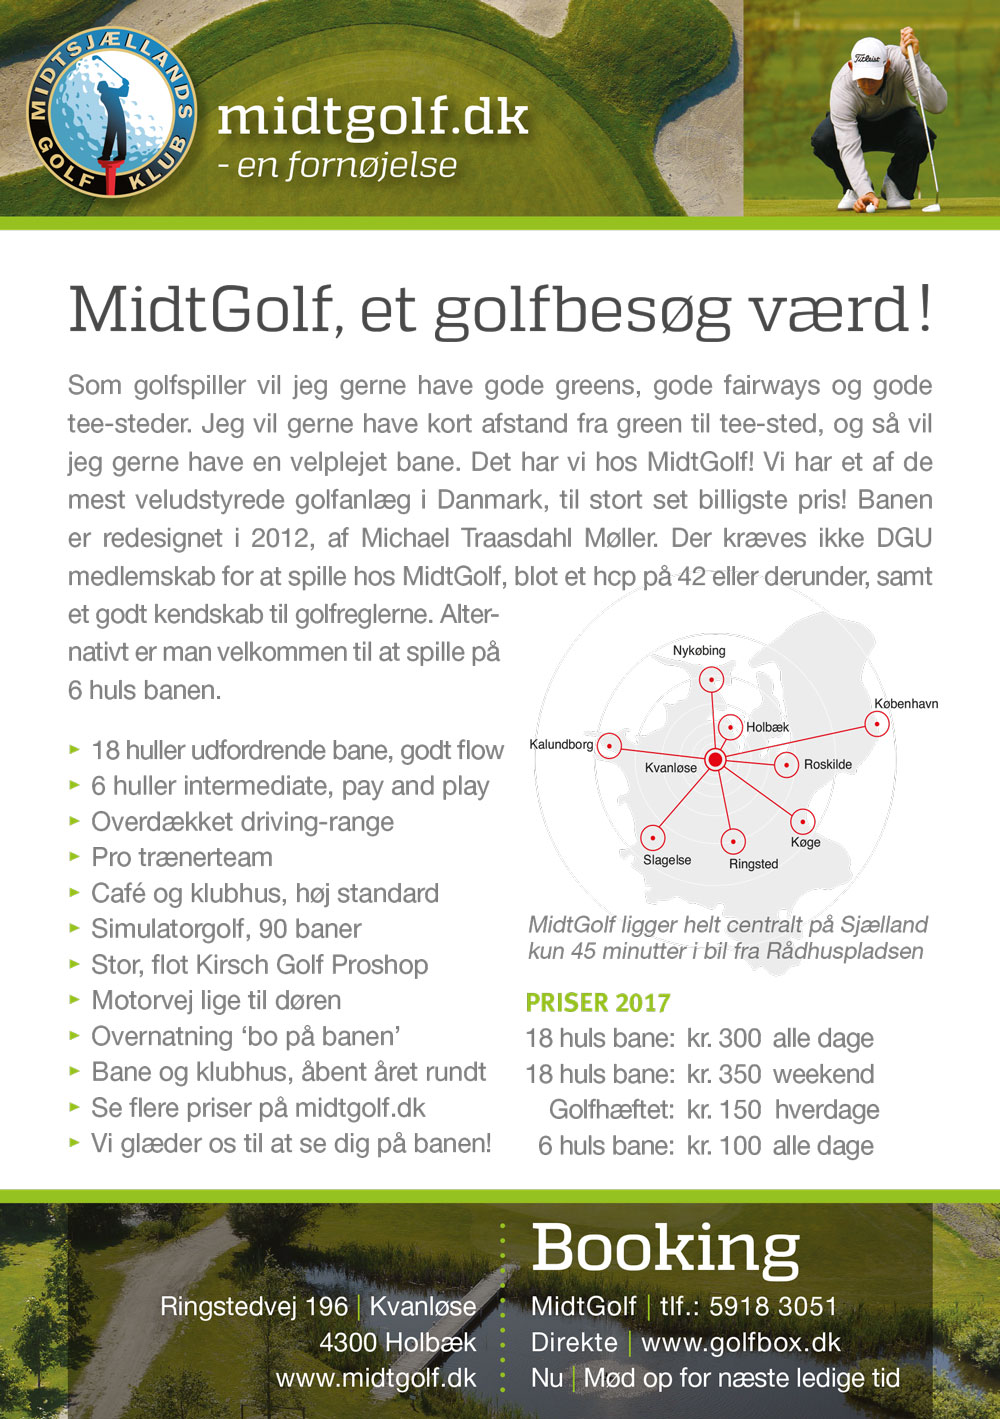 MidtGolf A5 flyer 01 2017 greenfee 001